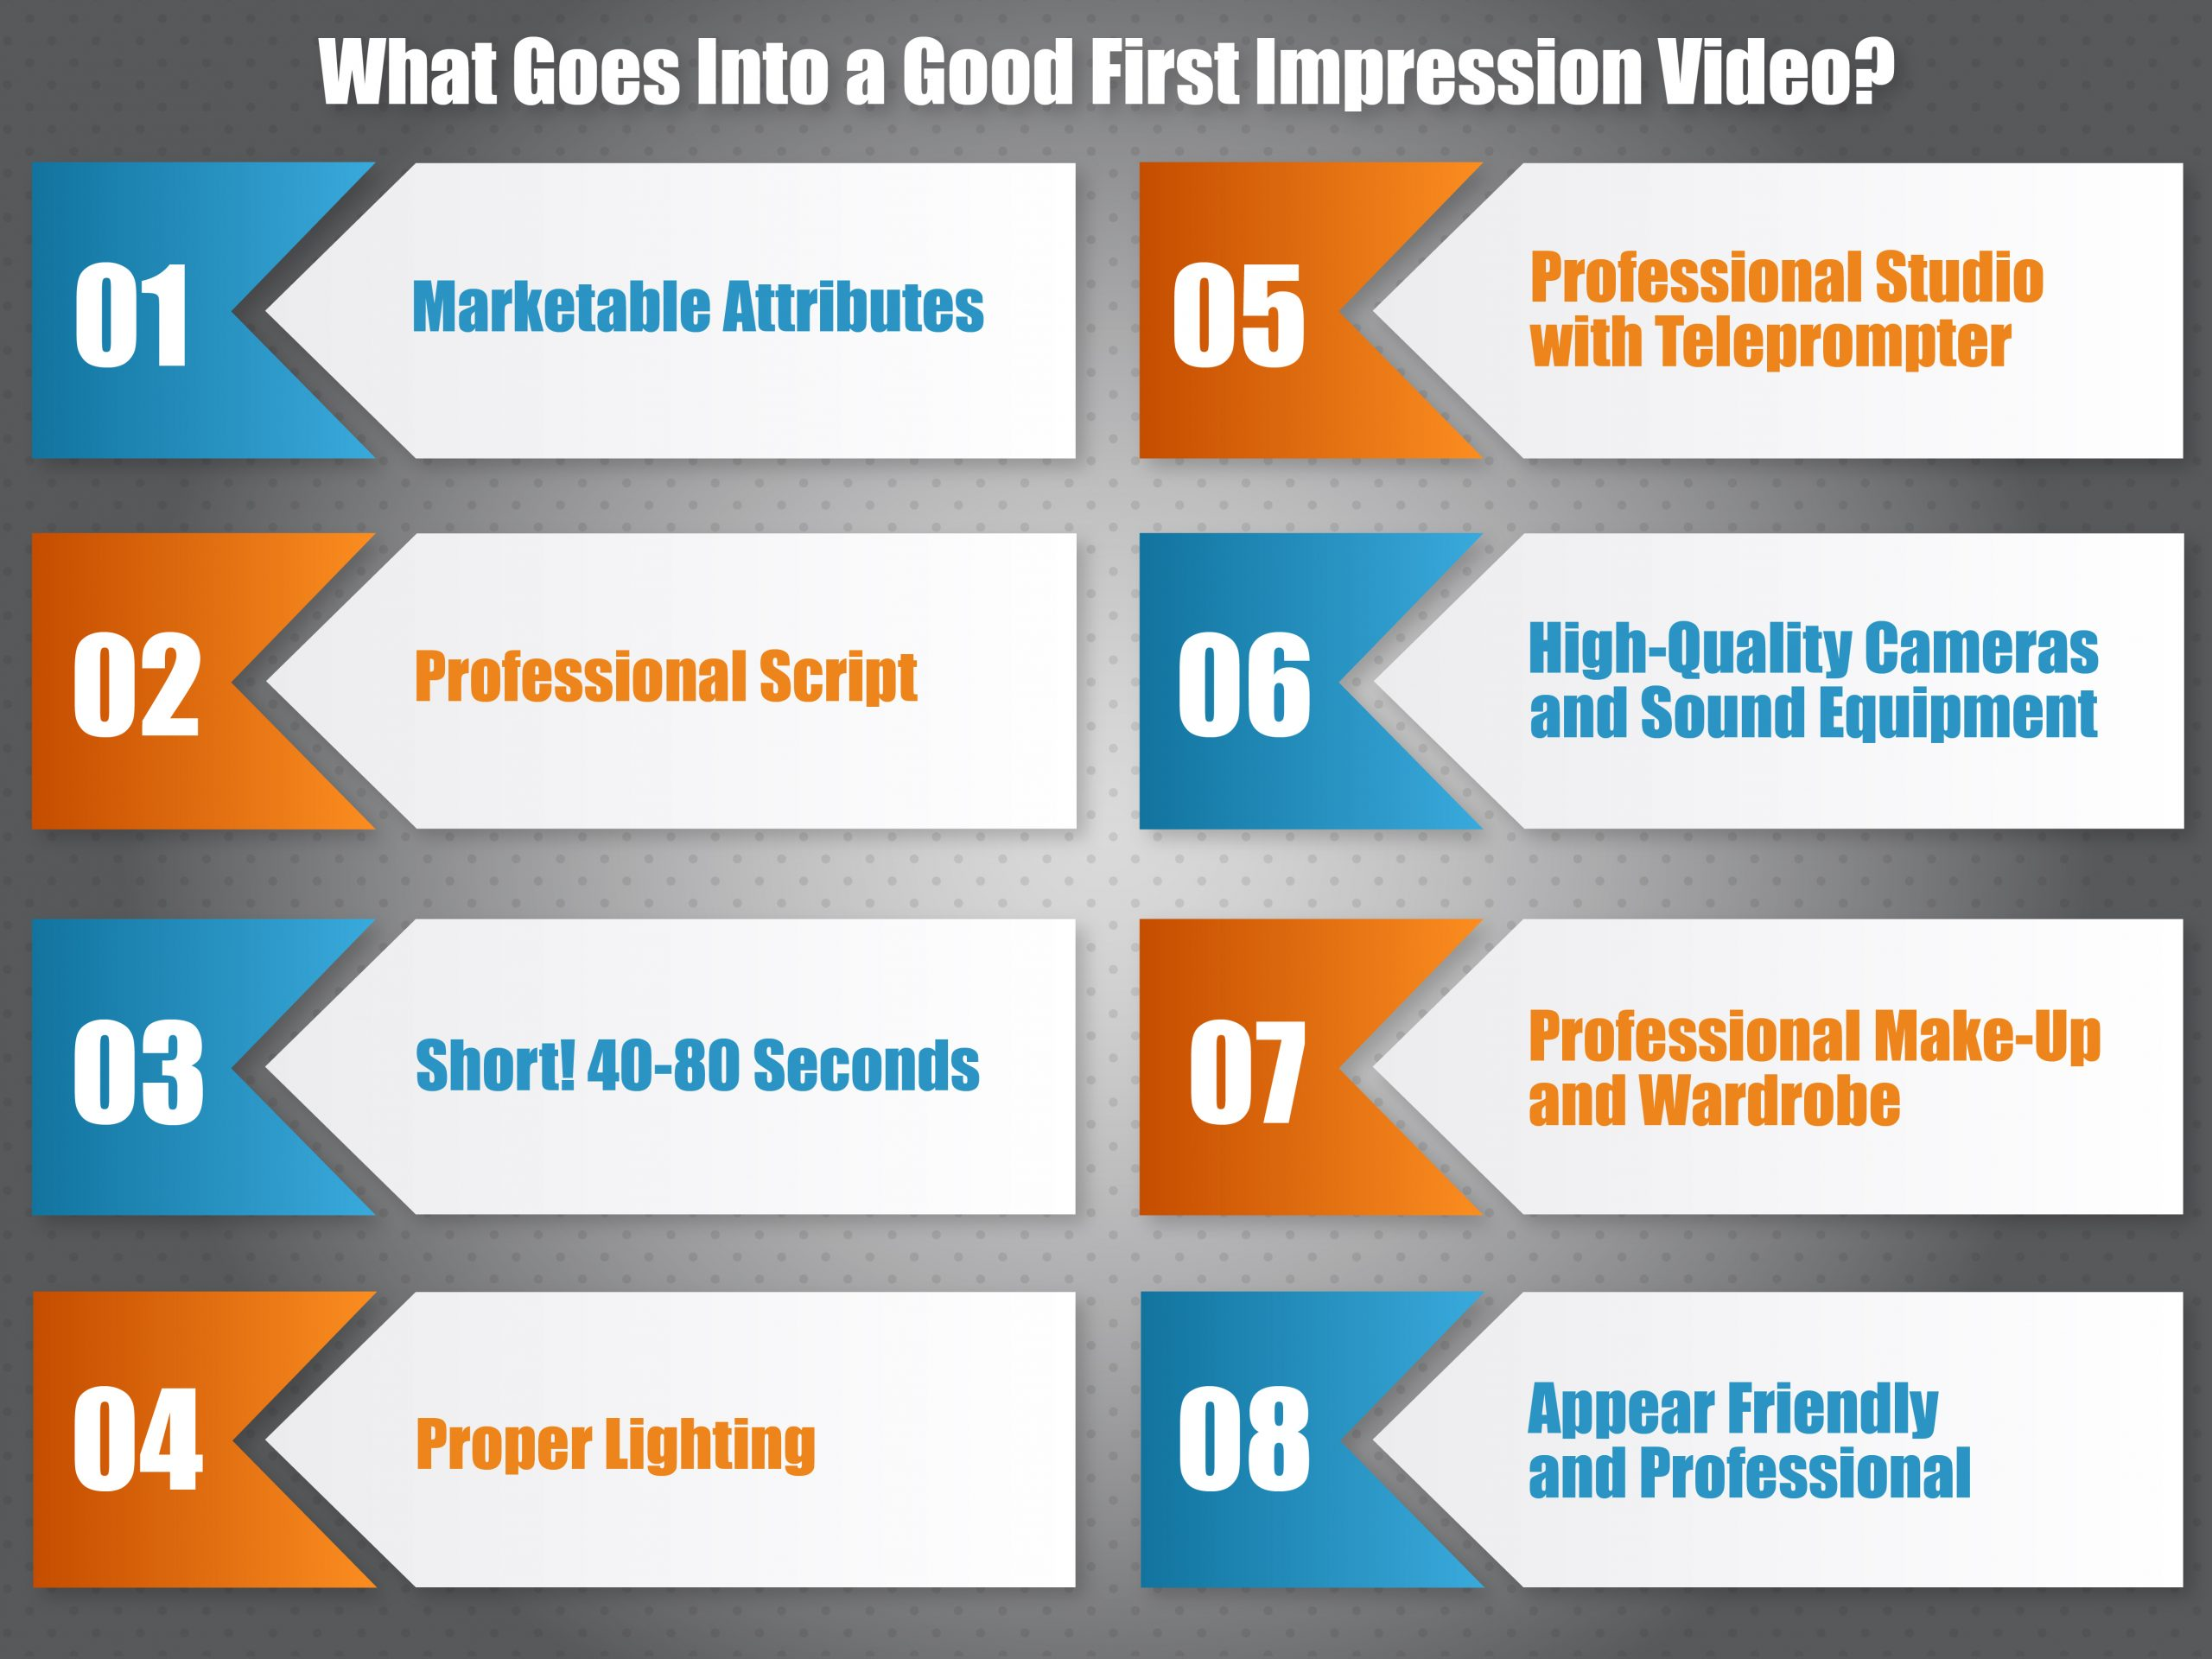 What Goes Into a Good First Impression Dentist Video